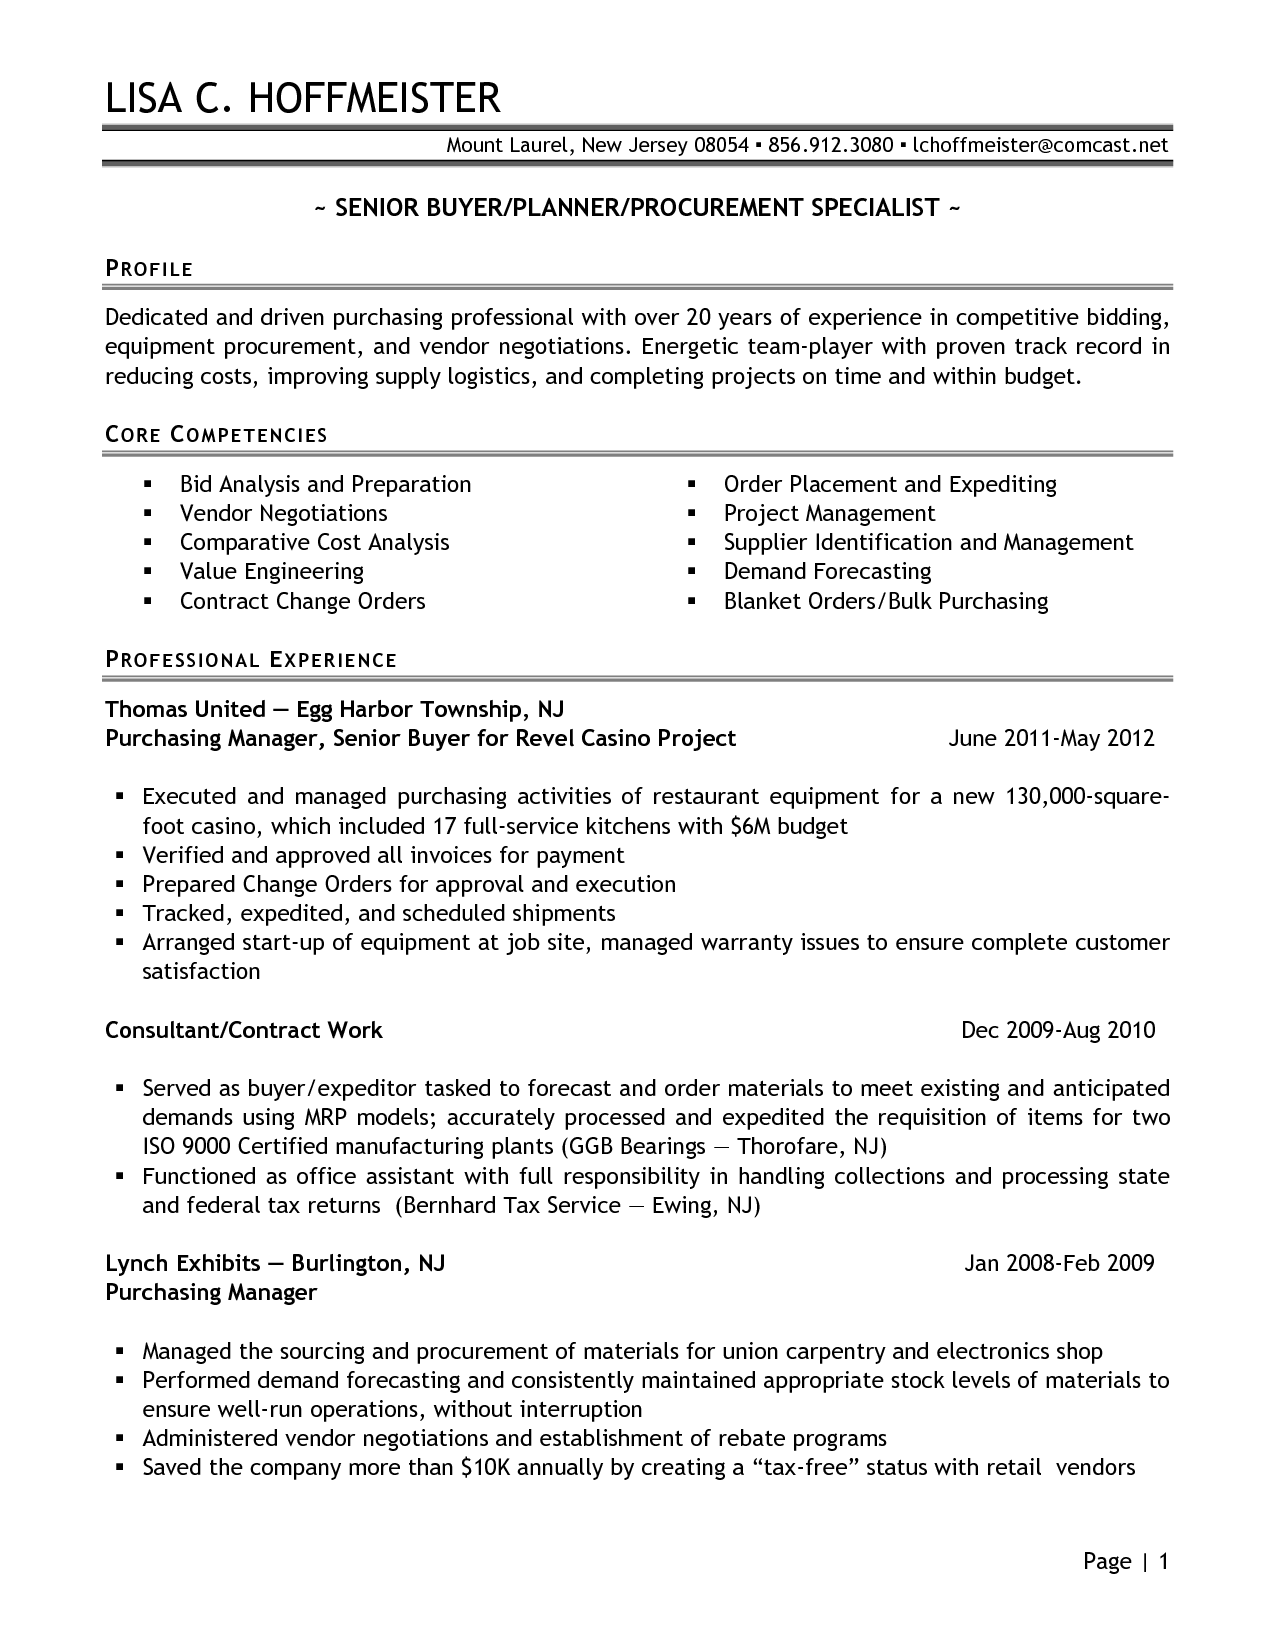 Sample Procurement Resume Senior Logistic Management Resume Senior Buyer